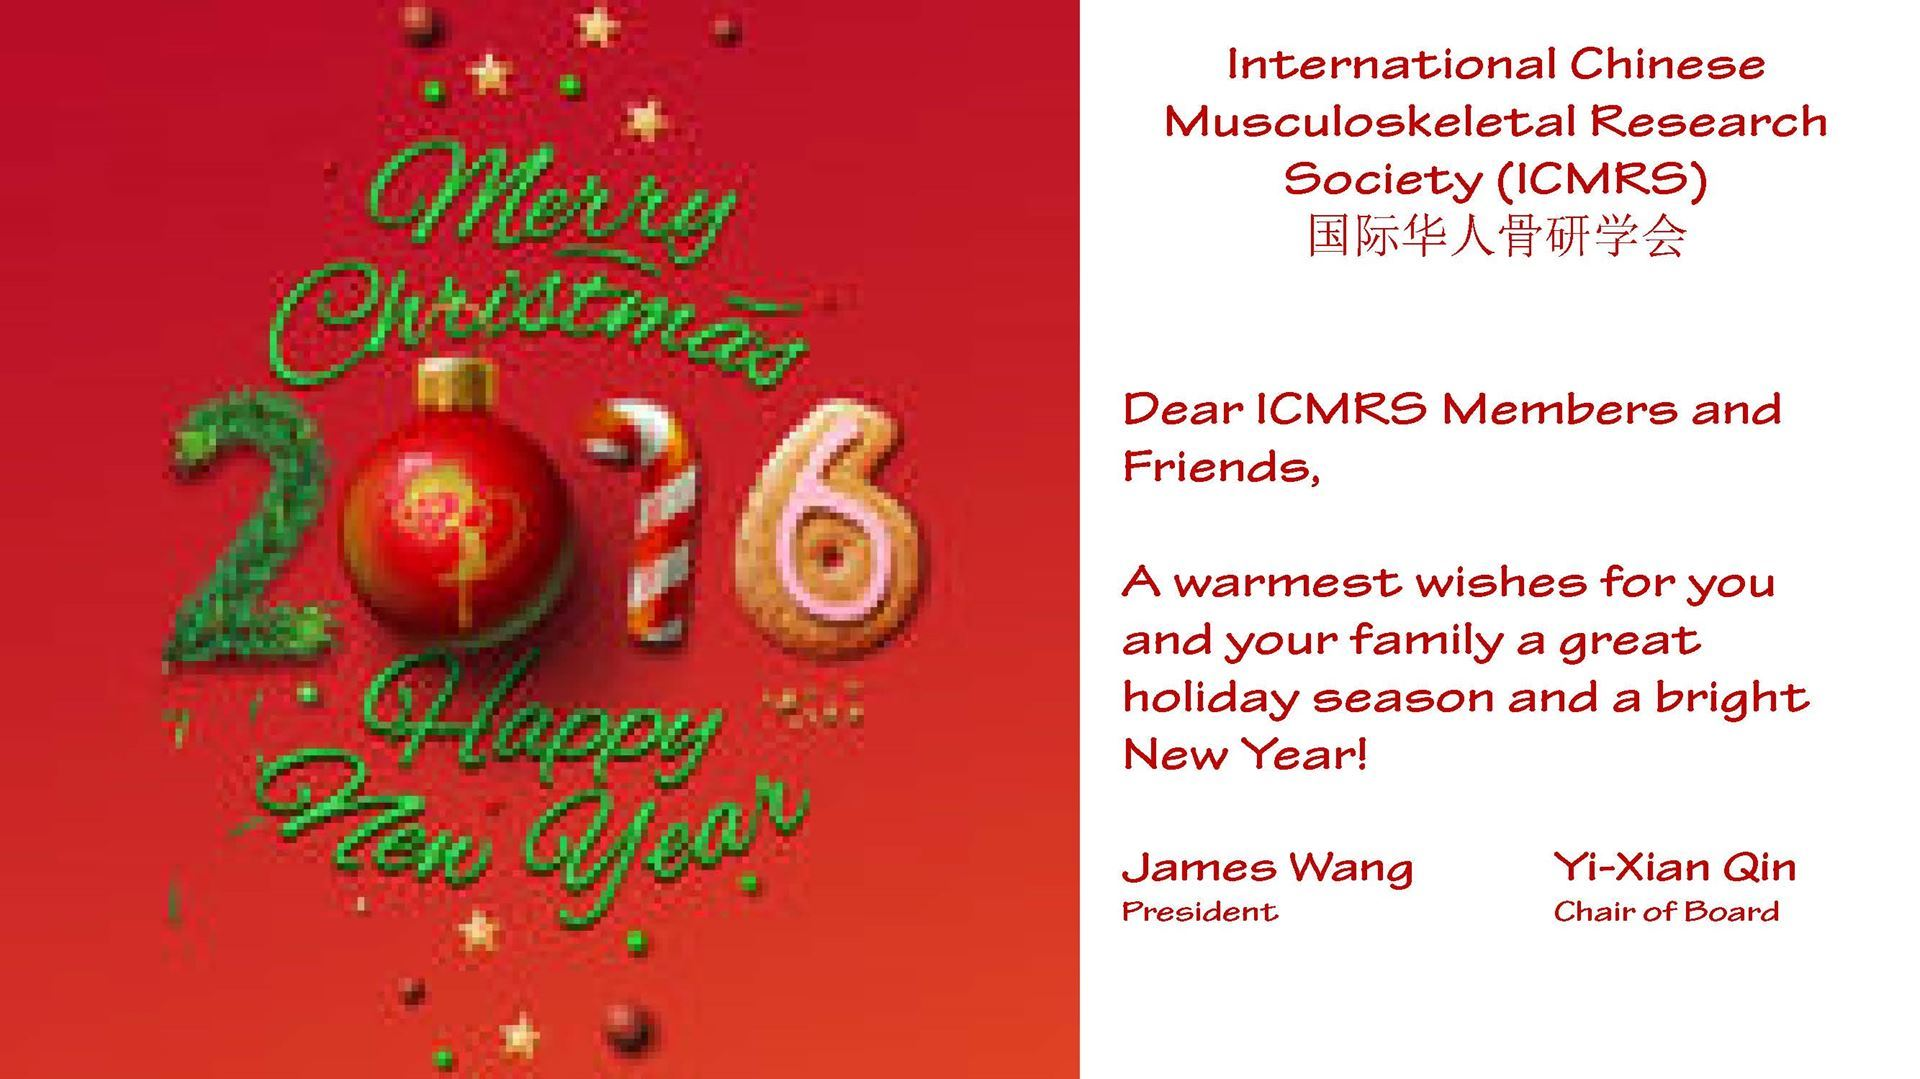 Icmrs presidents corner season greetings to our icmrs members and friends m4hsunfo